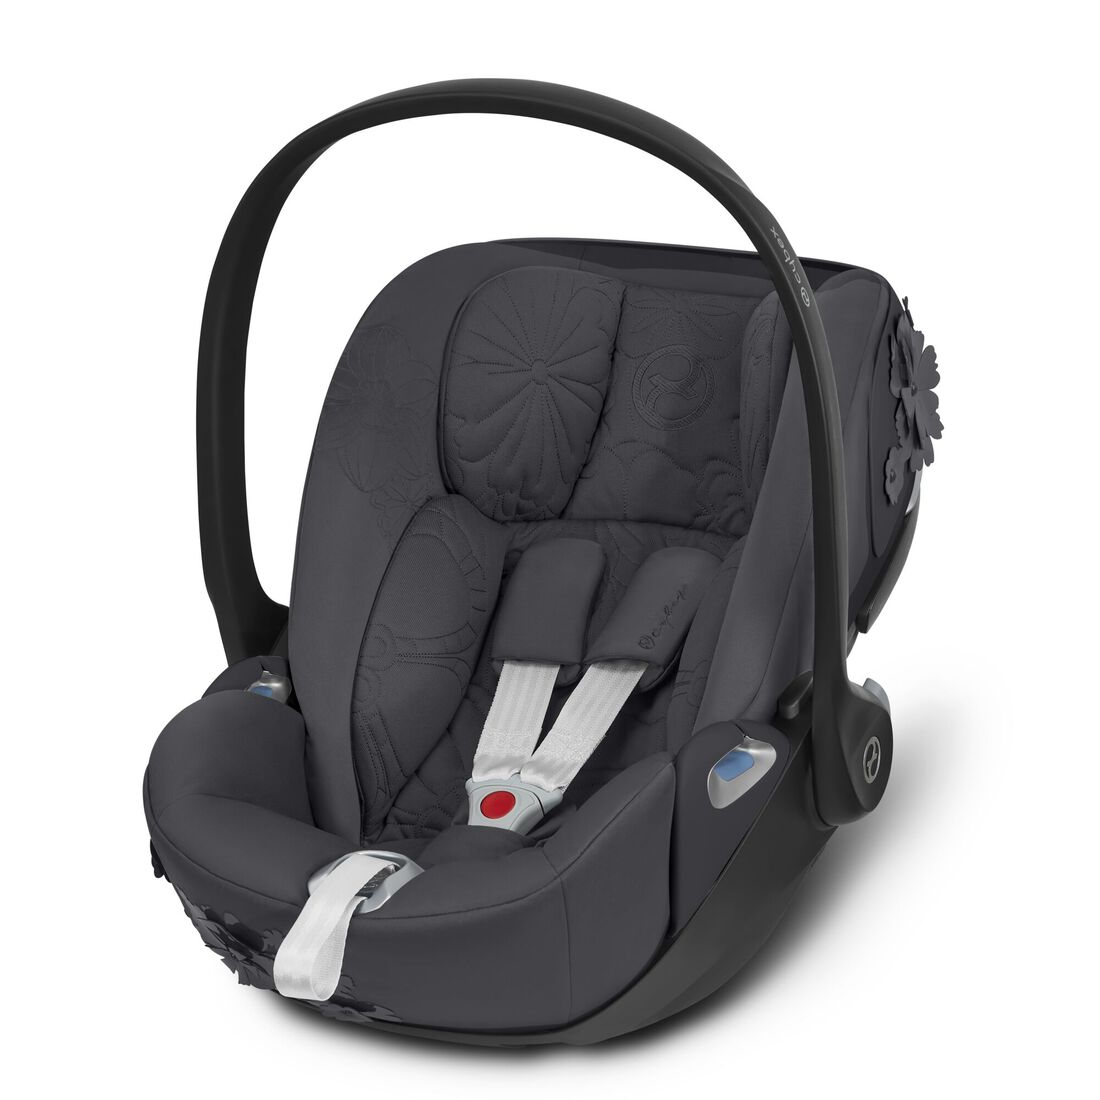 CYBEX Cloud Z i-Size - Dream Grey in Dream Grey large image number 2